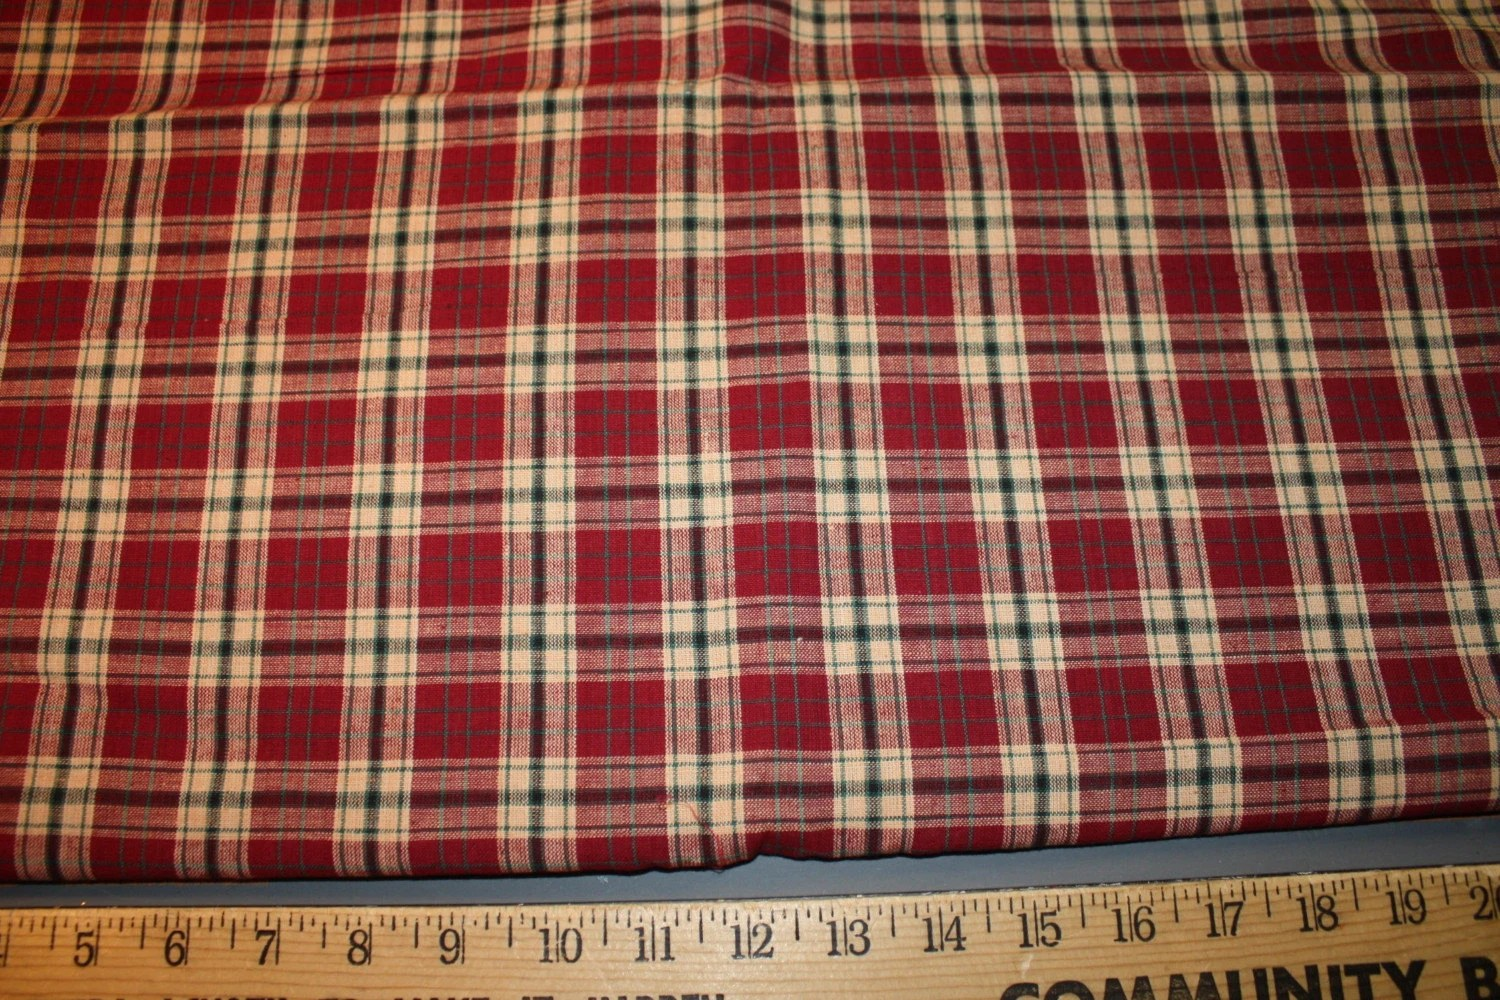 Cotton Homespun Fabric Green Burgundy Tan Black Plaid Fabric